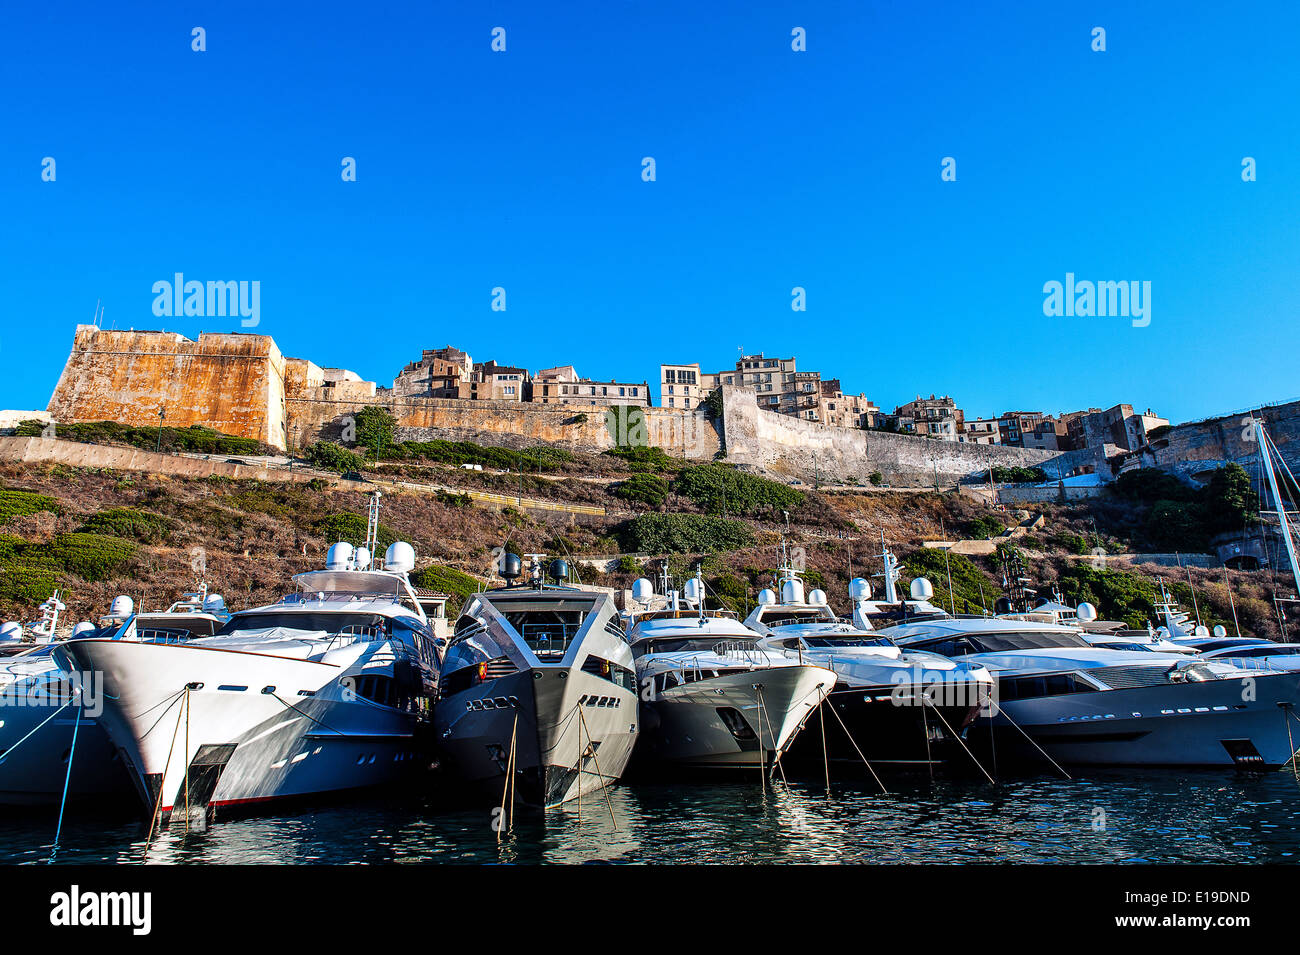 Europe, France, Corse-du-Sud (2A), Bonifacio. Cruise ships in a Marina front of the ramparts. - Stock Image